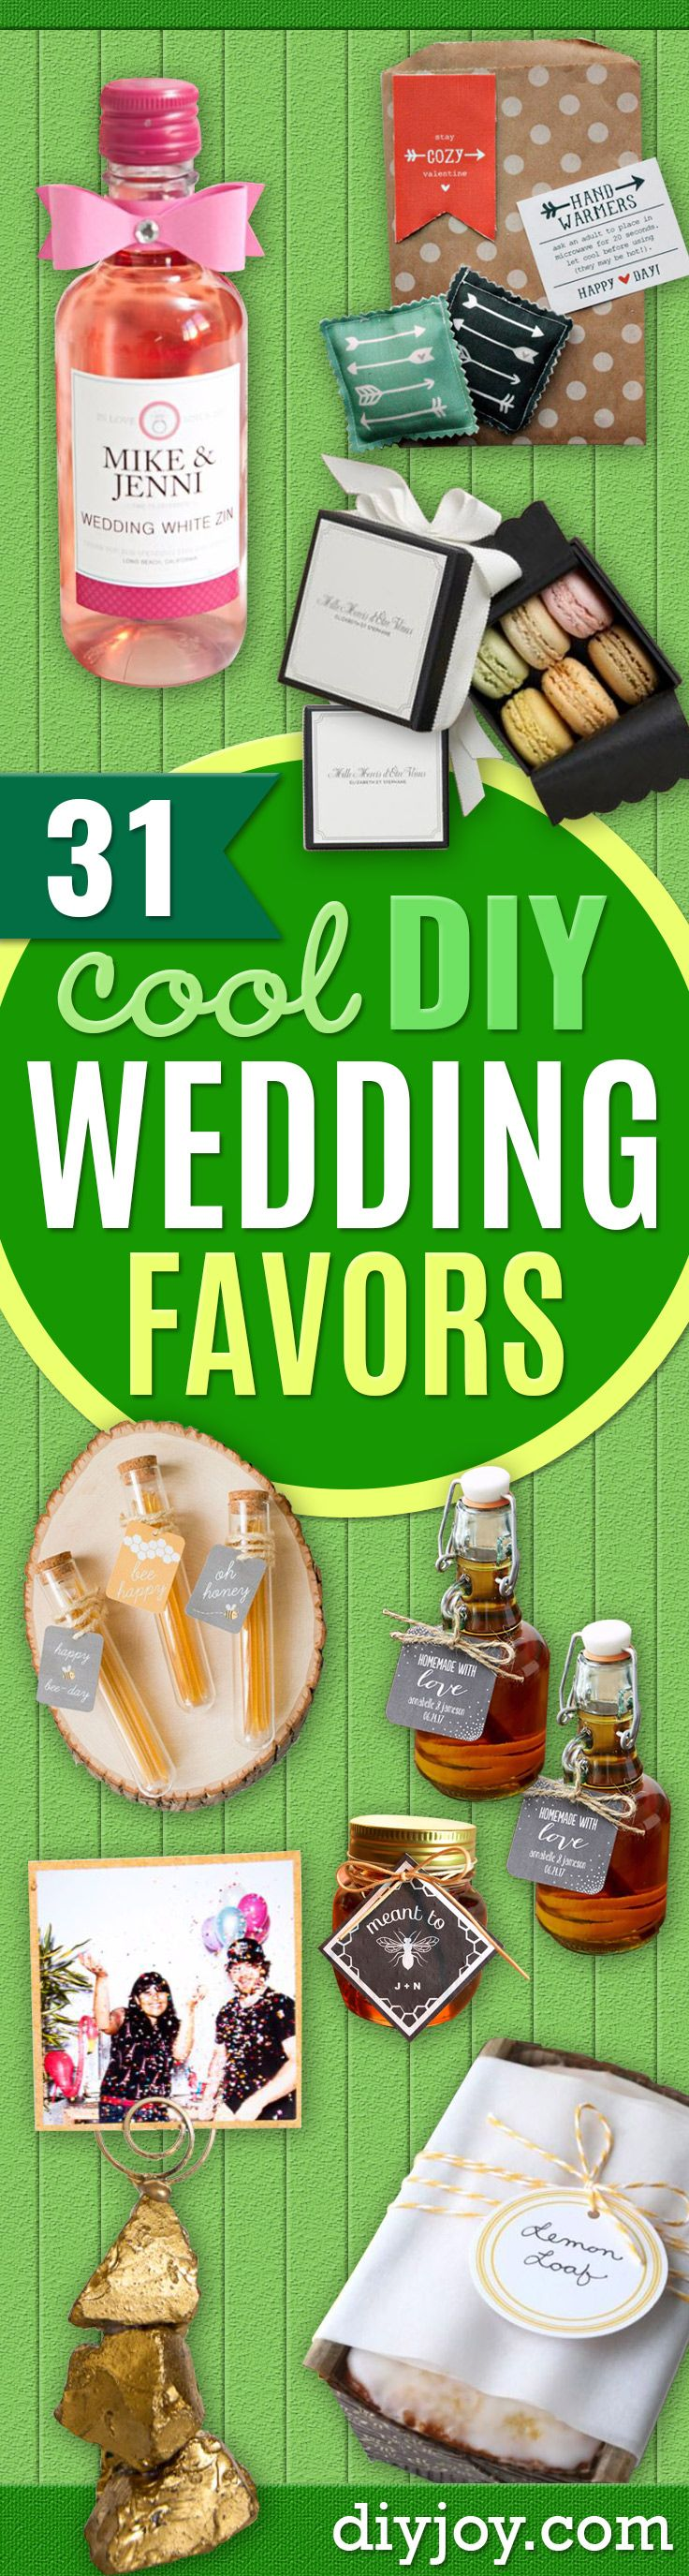 31 brilliantly creative wedding favors you can make for your big day 31 brilliantly creative wedding favors you can make for your big day solutioingenieria Choice Image